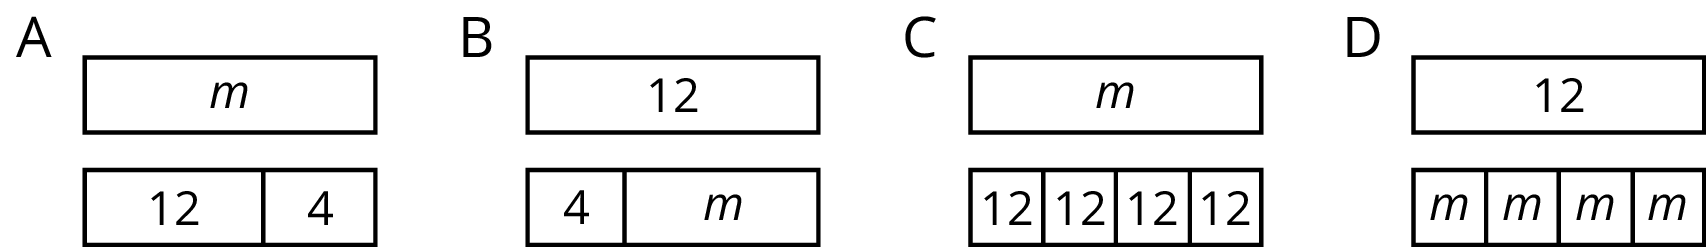 Four tape diagrams labeled A, B, C, and D. Tape diagram A has 2 bars of equal length. The top bar is labeled m. The bottom bar is partitioned into 2 parts labeled 12 and 4. Tape diagram B has 2 bars of equal length. The top bar is labeled 12. The bottom bar is partitioned into 2 parts labeled 4 and m. Tape diagram C has 2 bars of equal length. The top bar is labeled m. The bottom bar is partitioned into 4 parts labeled 12, 12, 12, and 12. Tape diagram D has 2 bars of equal length. The top bar is labeled 12. The bottom bar is partitioned into 4 parts labeled m, m, m, and m.